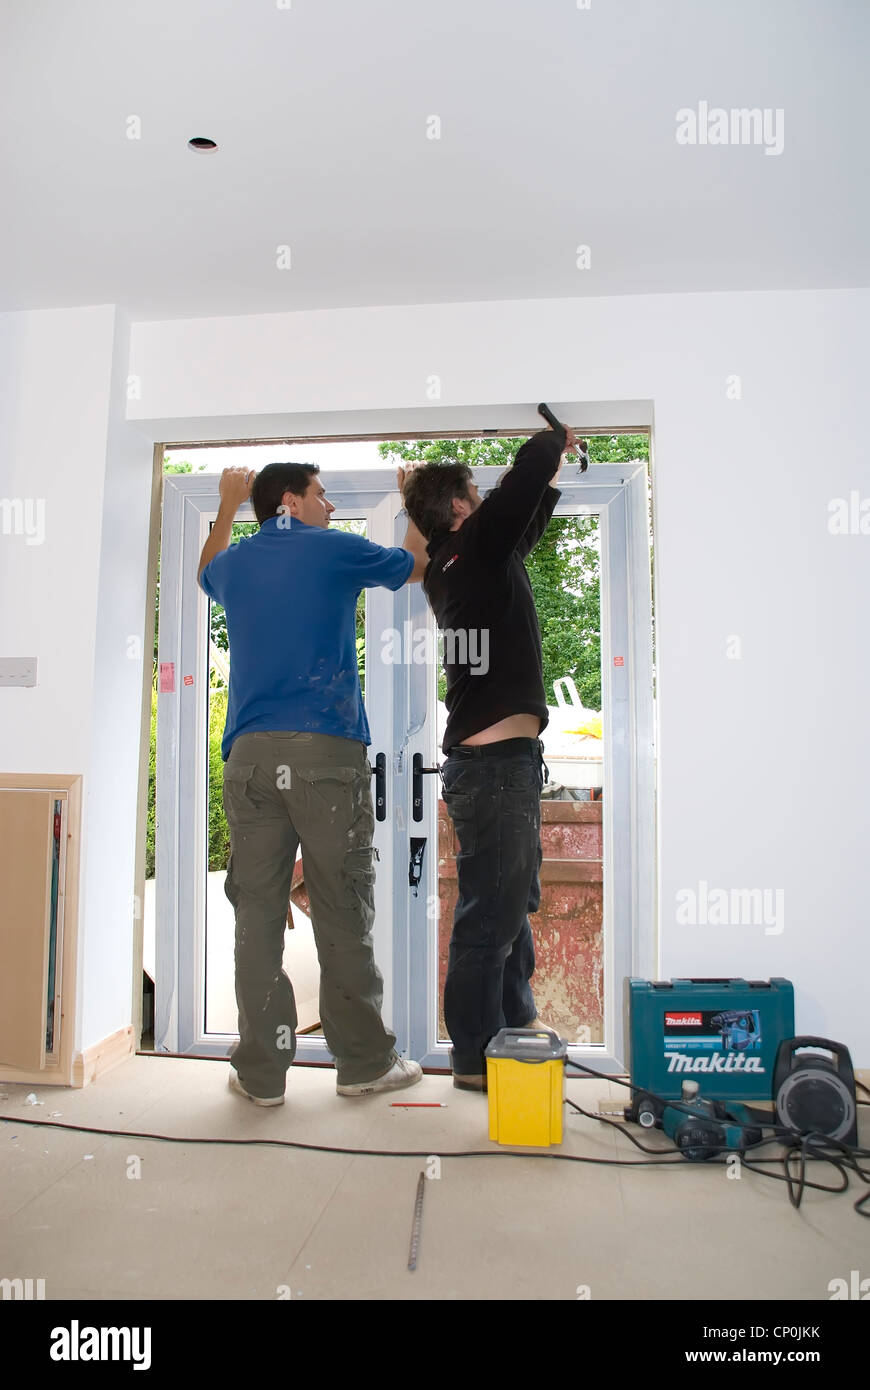 Installing A rated energy efficient replacement double glazed Fench windows doors in a garage conversion house extension. - Stock Image